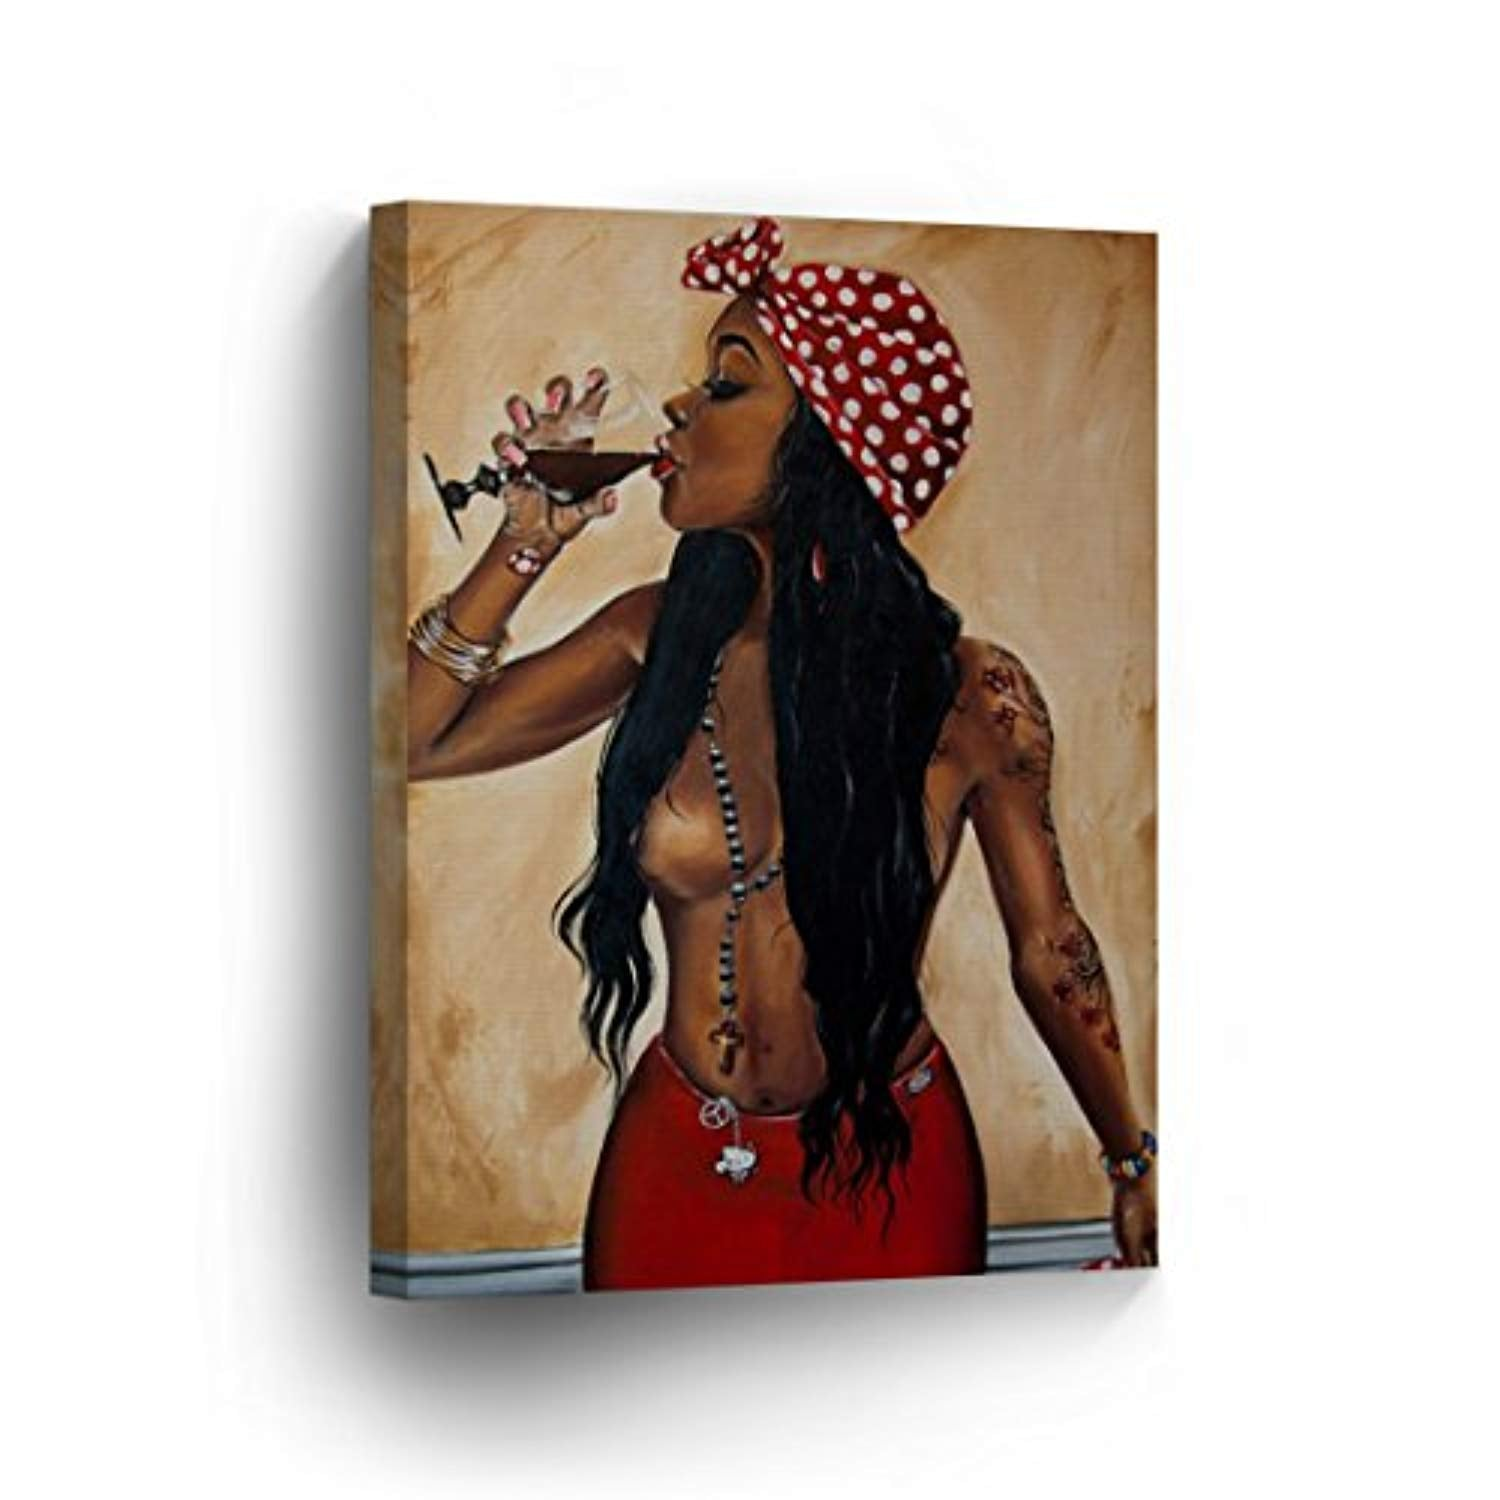 Half Nude Hot African Woman is Drinking a Glass of Wine Oil Painting CANVAS PRINT Decorative Art Wall Decor Artwork Wrapped Wood Stretcher Bars - Ready To Hang %100 Handmade in the USA - AfricanV47 - Ufumbuzi - Home